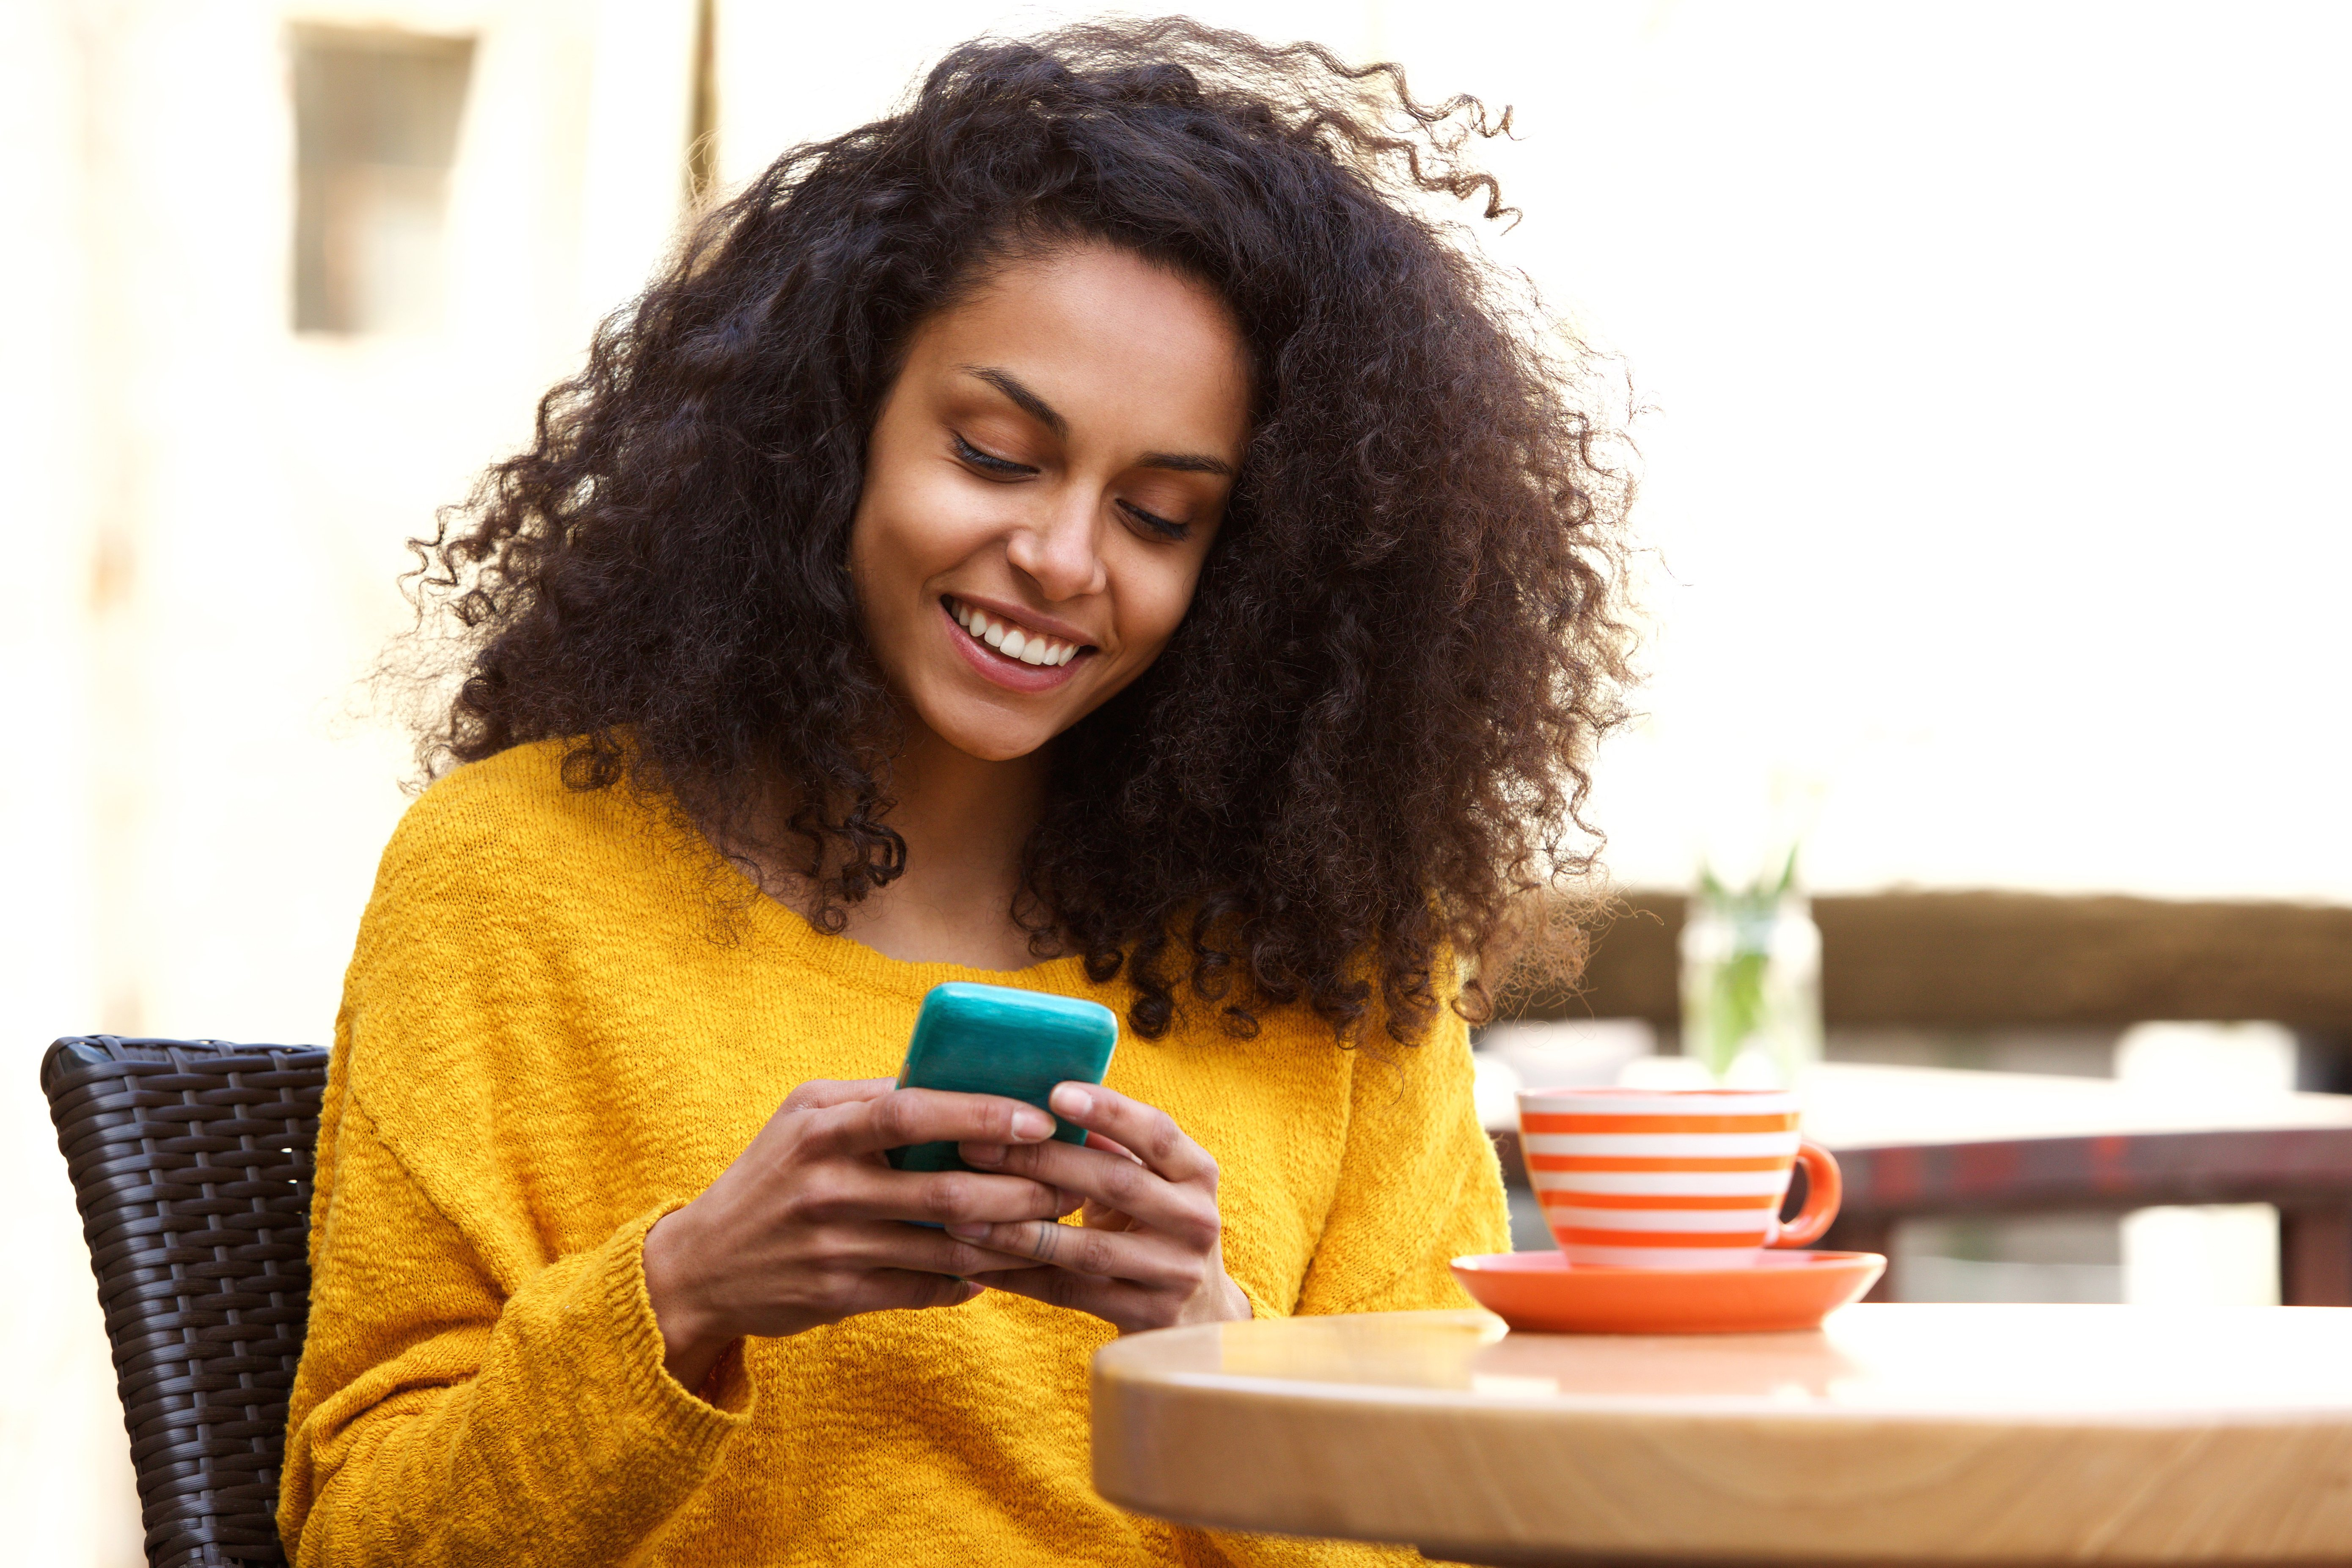 Woman texting   Source: Shutterstock